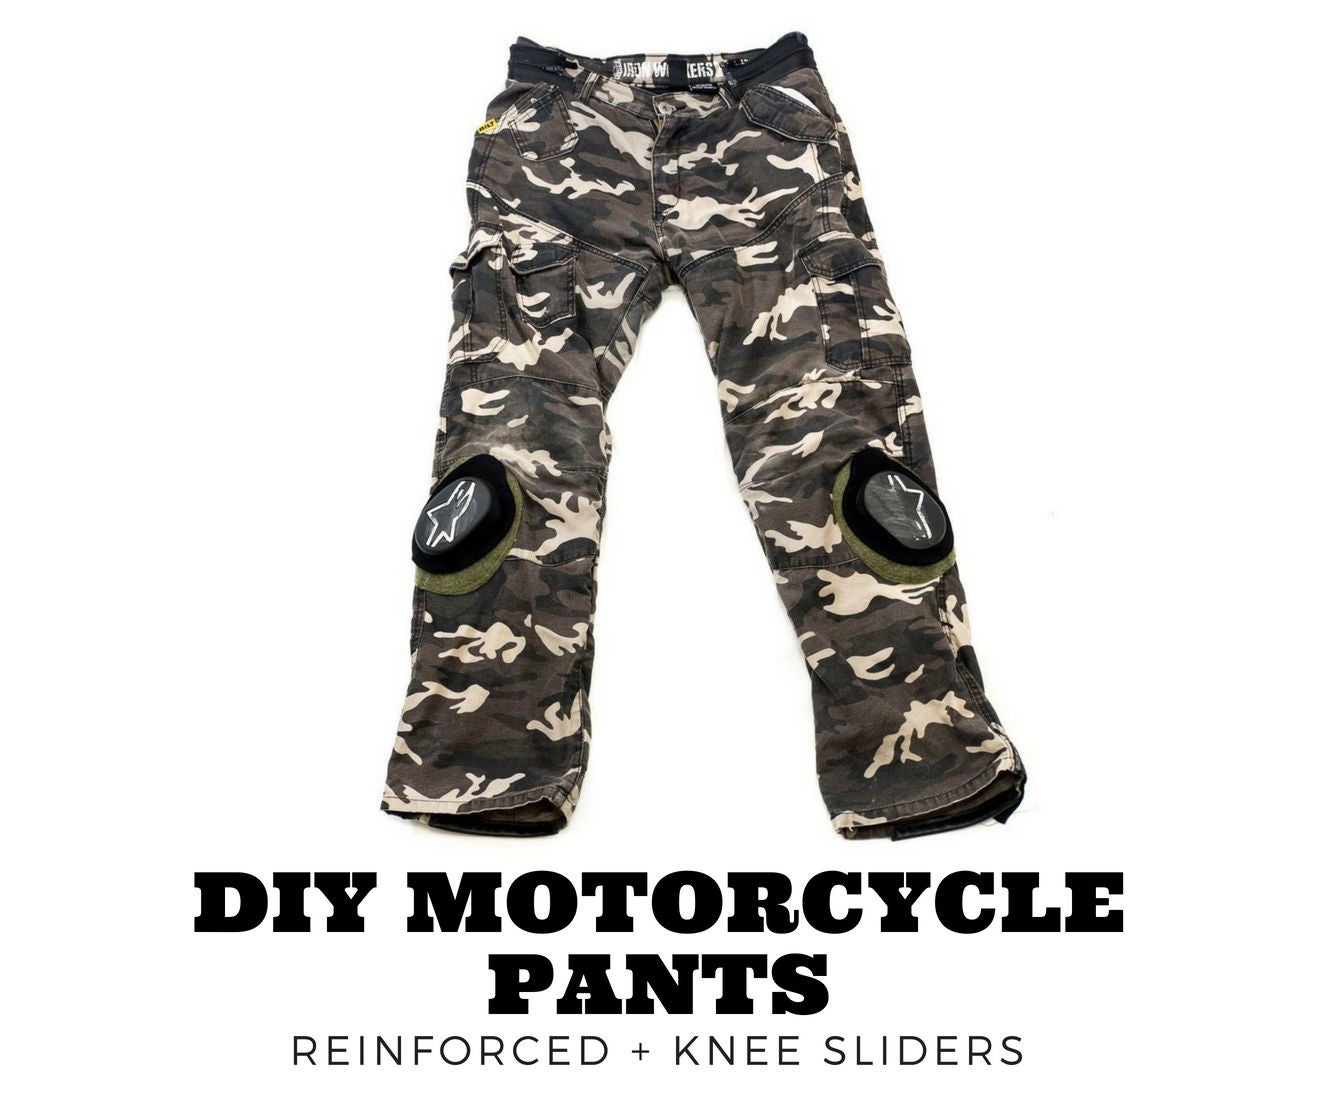 577c02874e DIY Armored Motorcycle Pants Upgrade: 9 Steps (with Pictures)